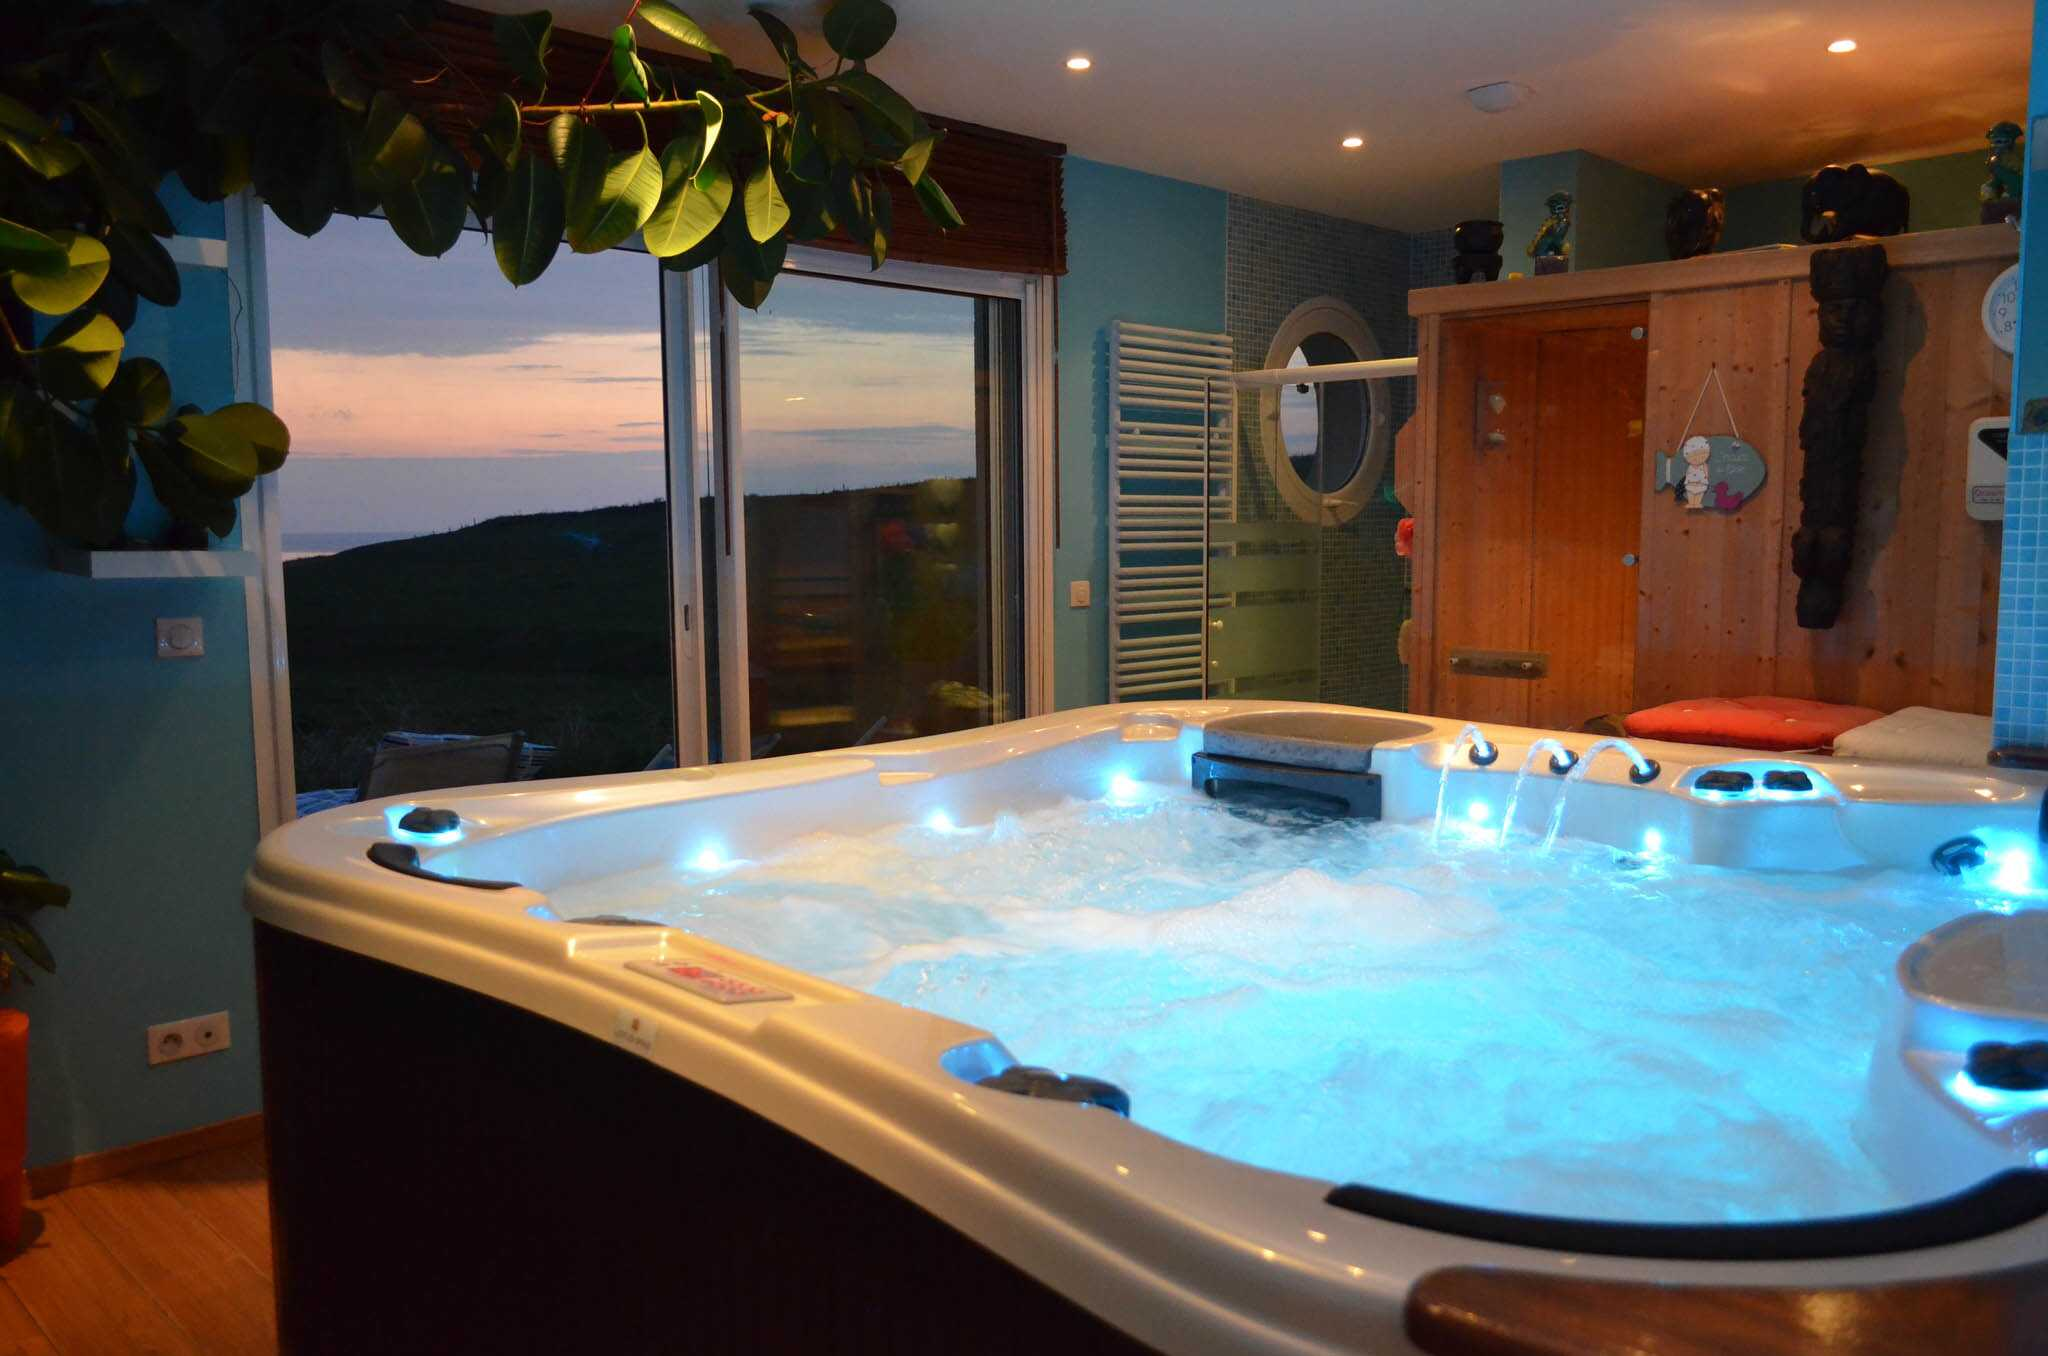 Chambre Avec Jacuzzi High Quality Images For Hotel Chambre Avec Jacuzzi Privatif